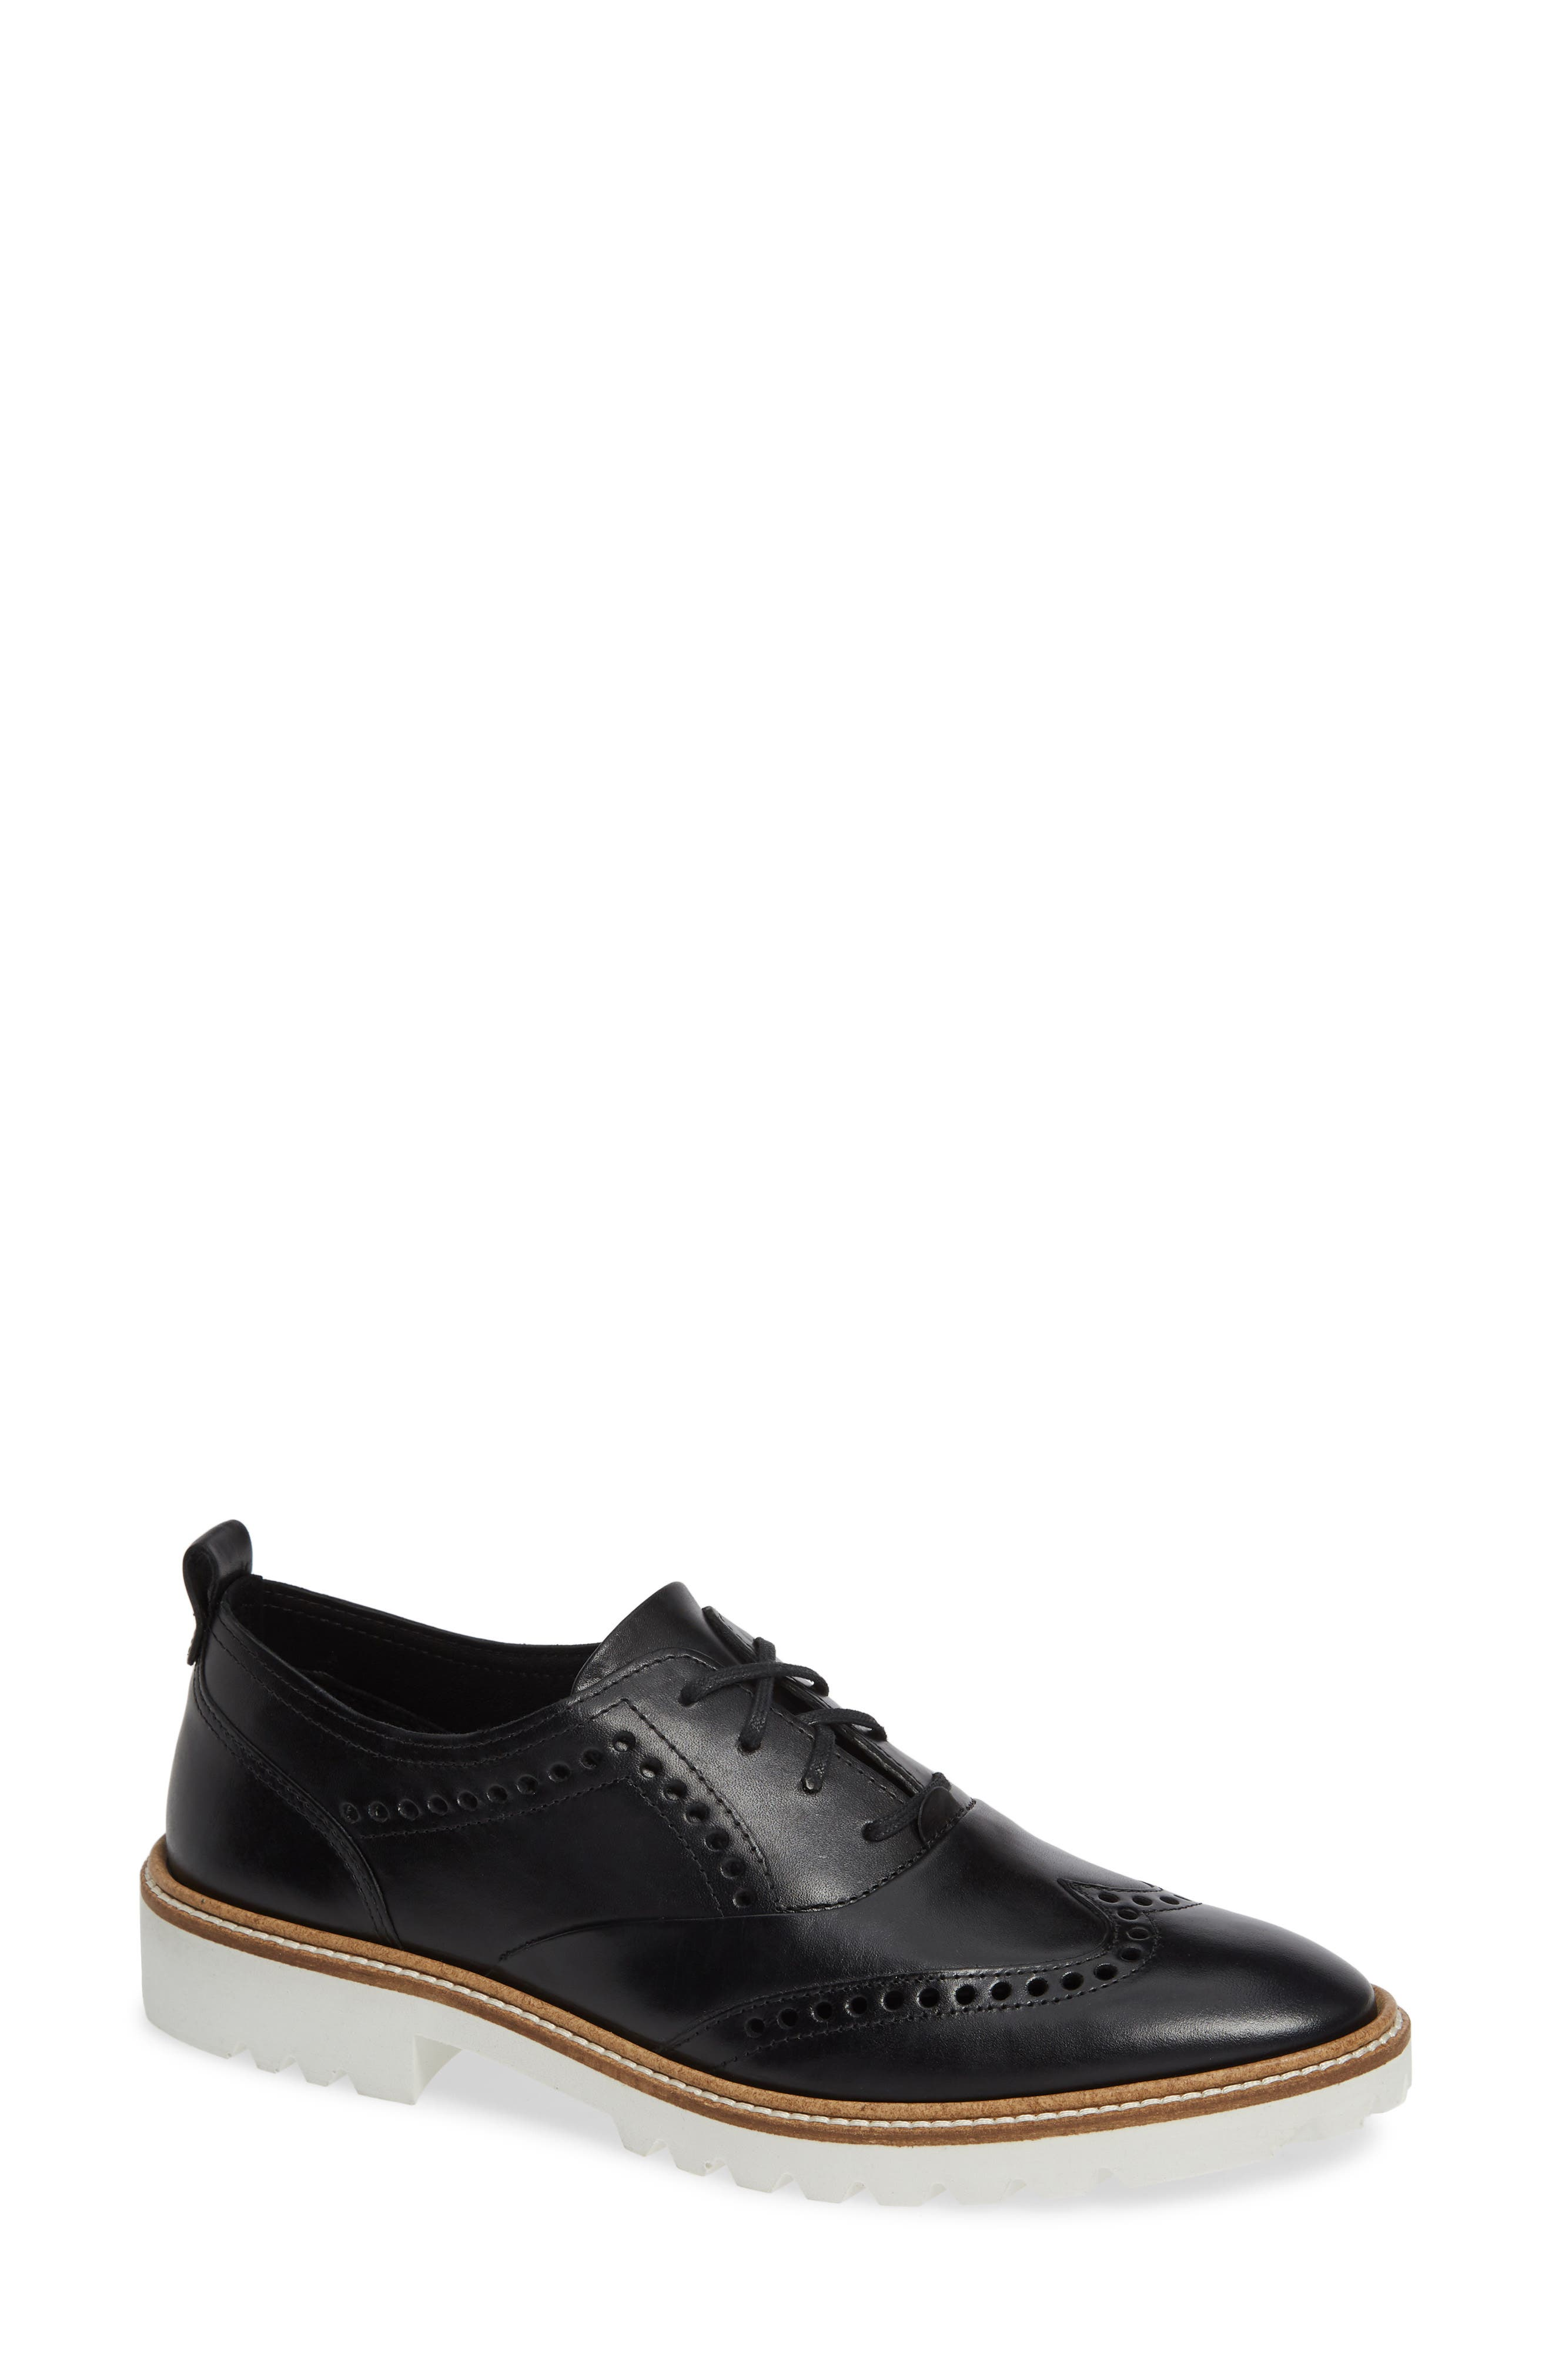 Incise Tailored Wingtip Oxford, Main, color, BLACK LEATHER